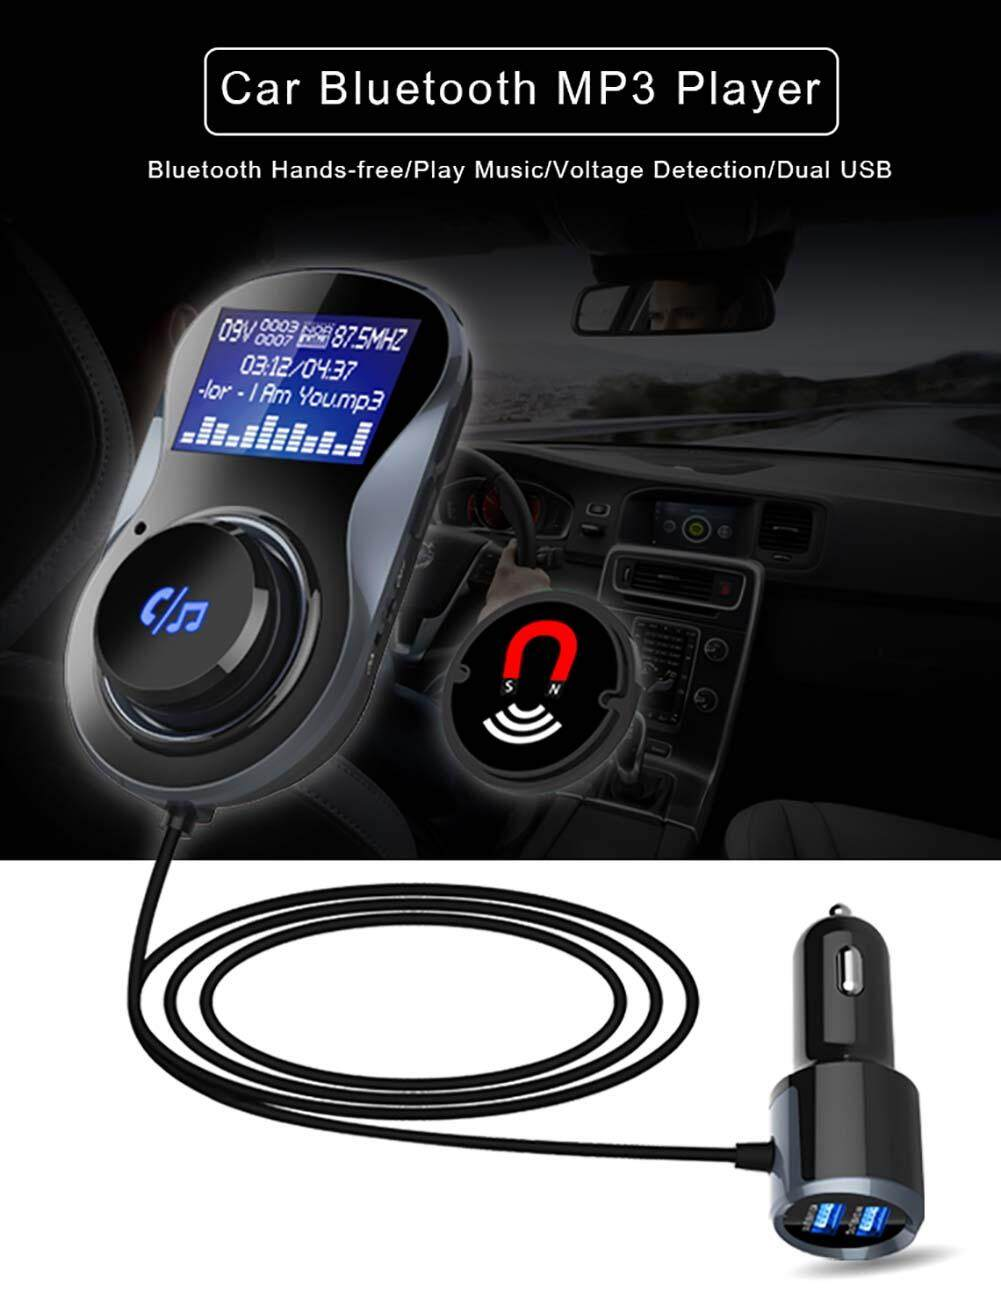 Topmotor Store-Car Bluetooth FM Transmitter Handsfree Car MP3 Music Player with LCD Display